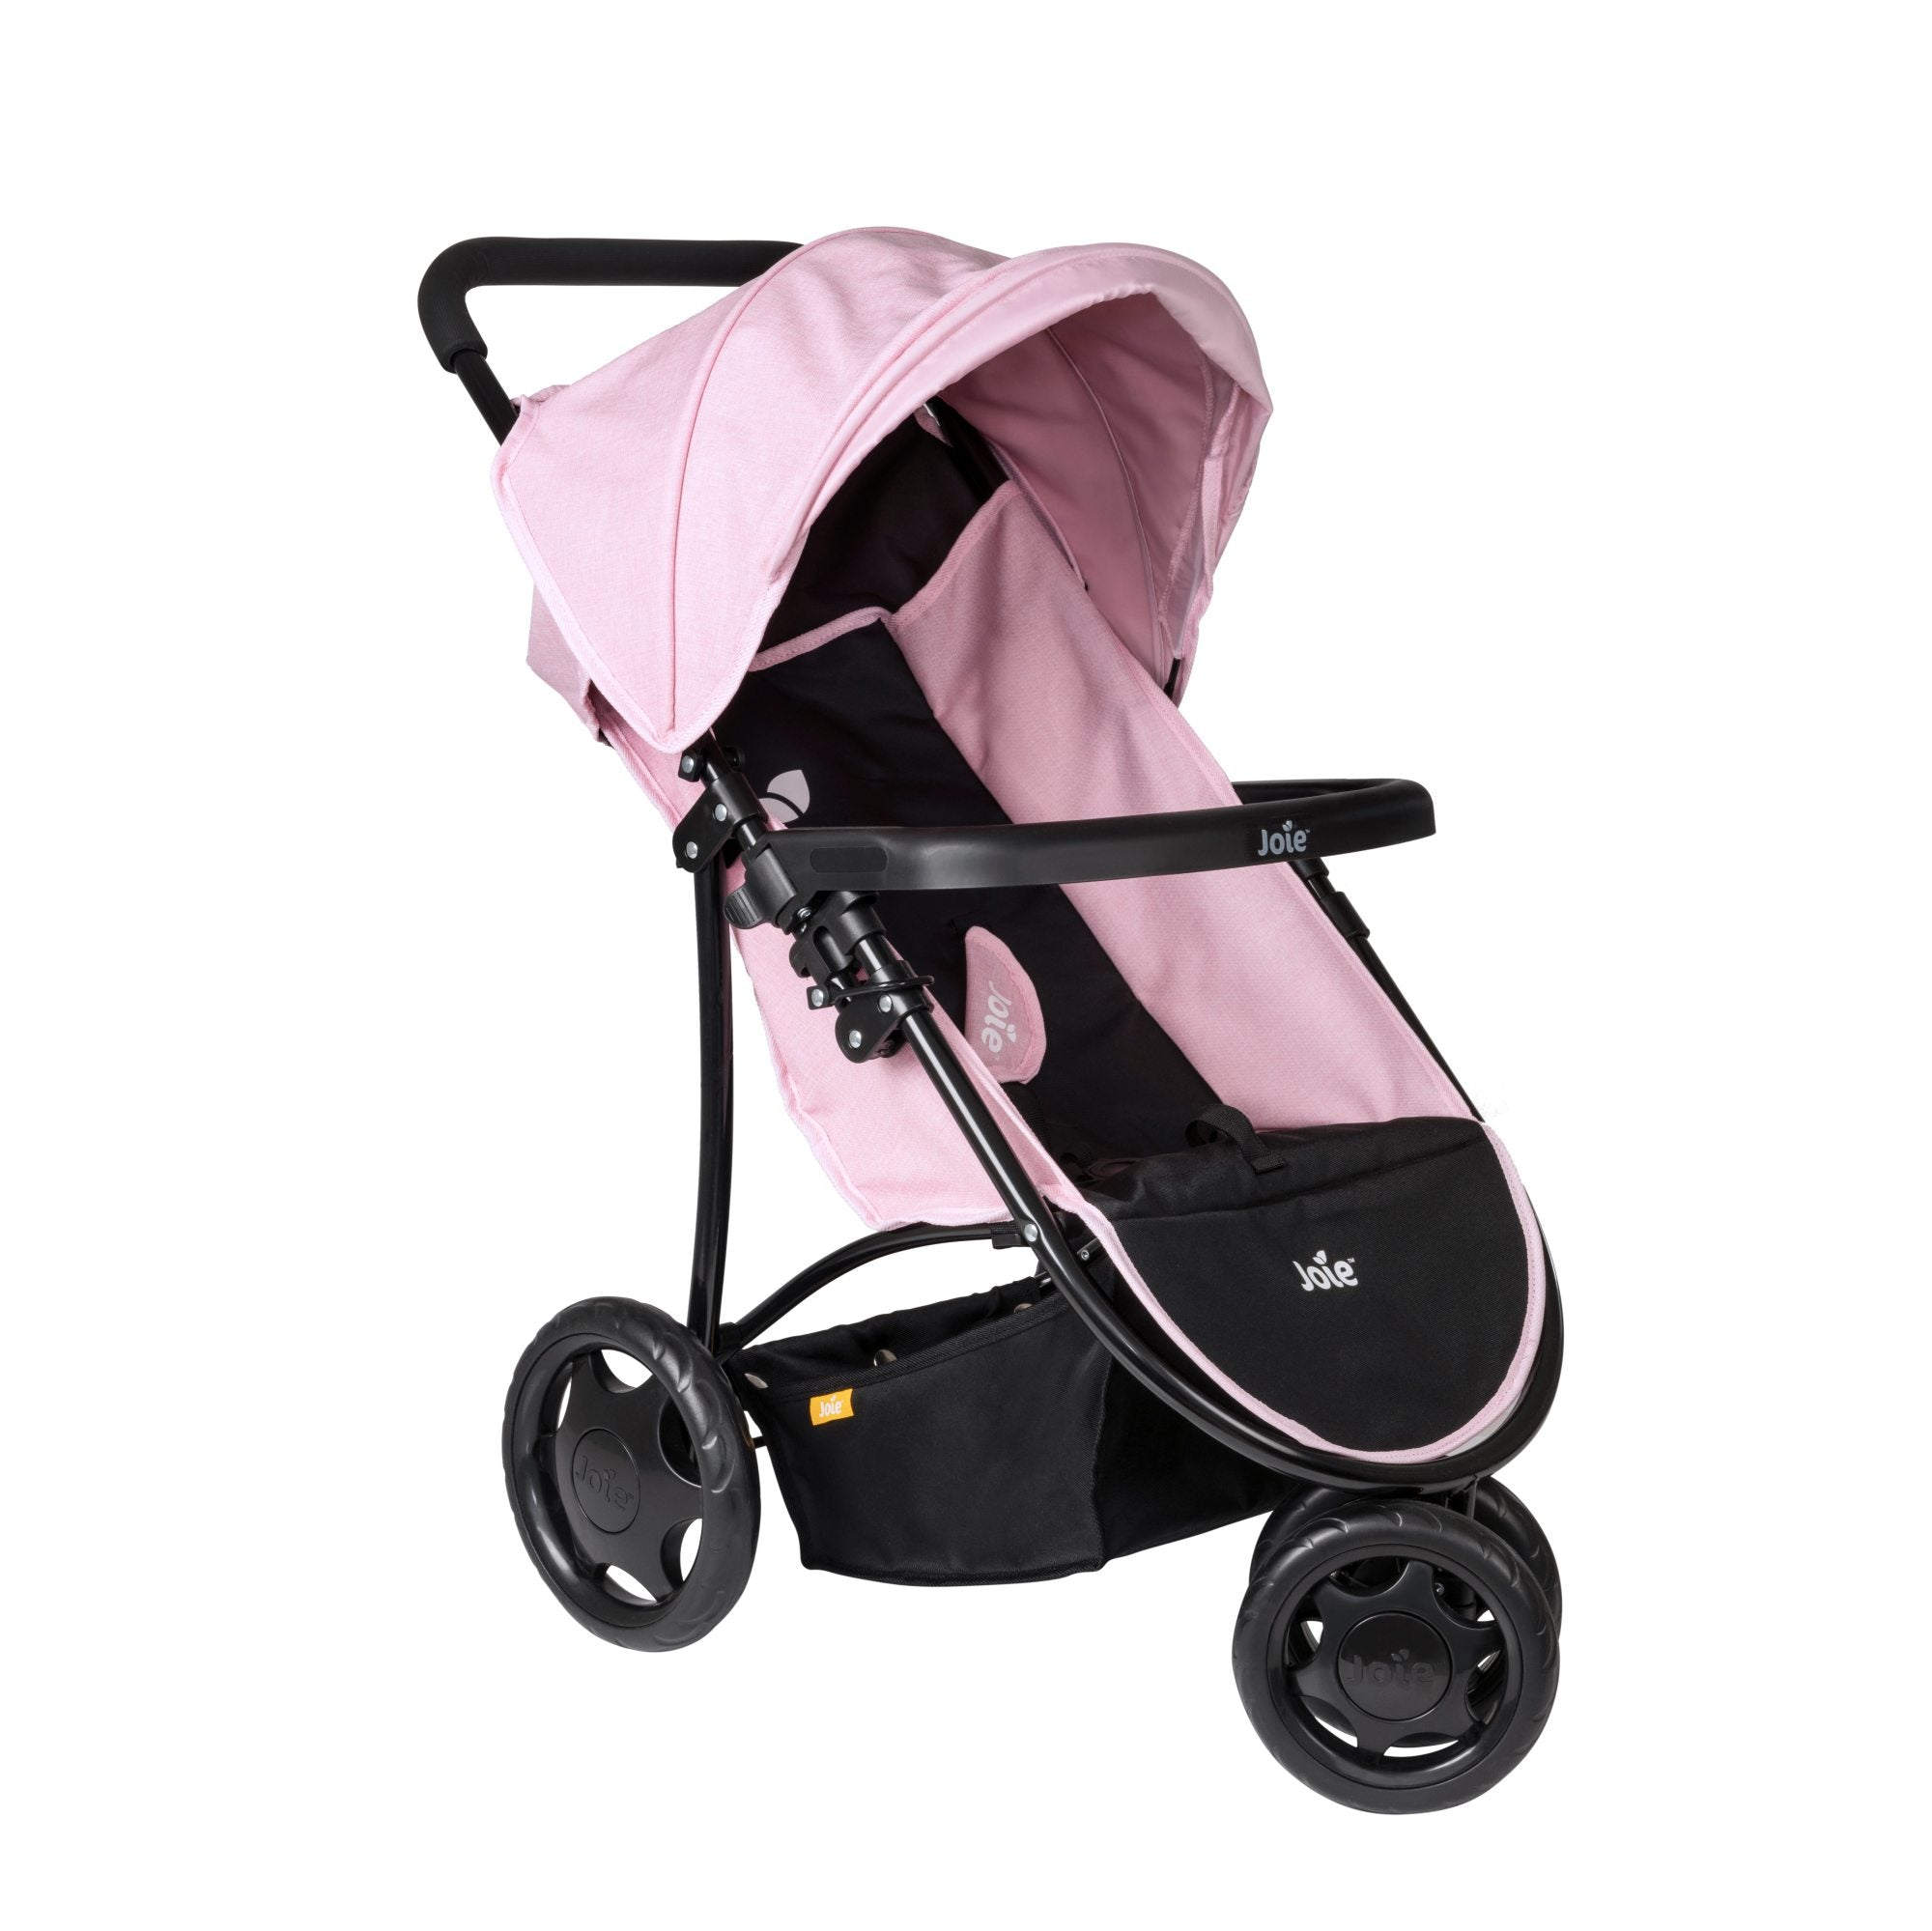 Joie Junior Litetrax Pushchair Pram